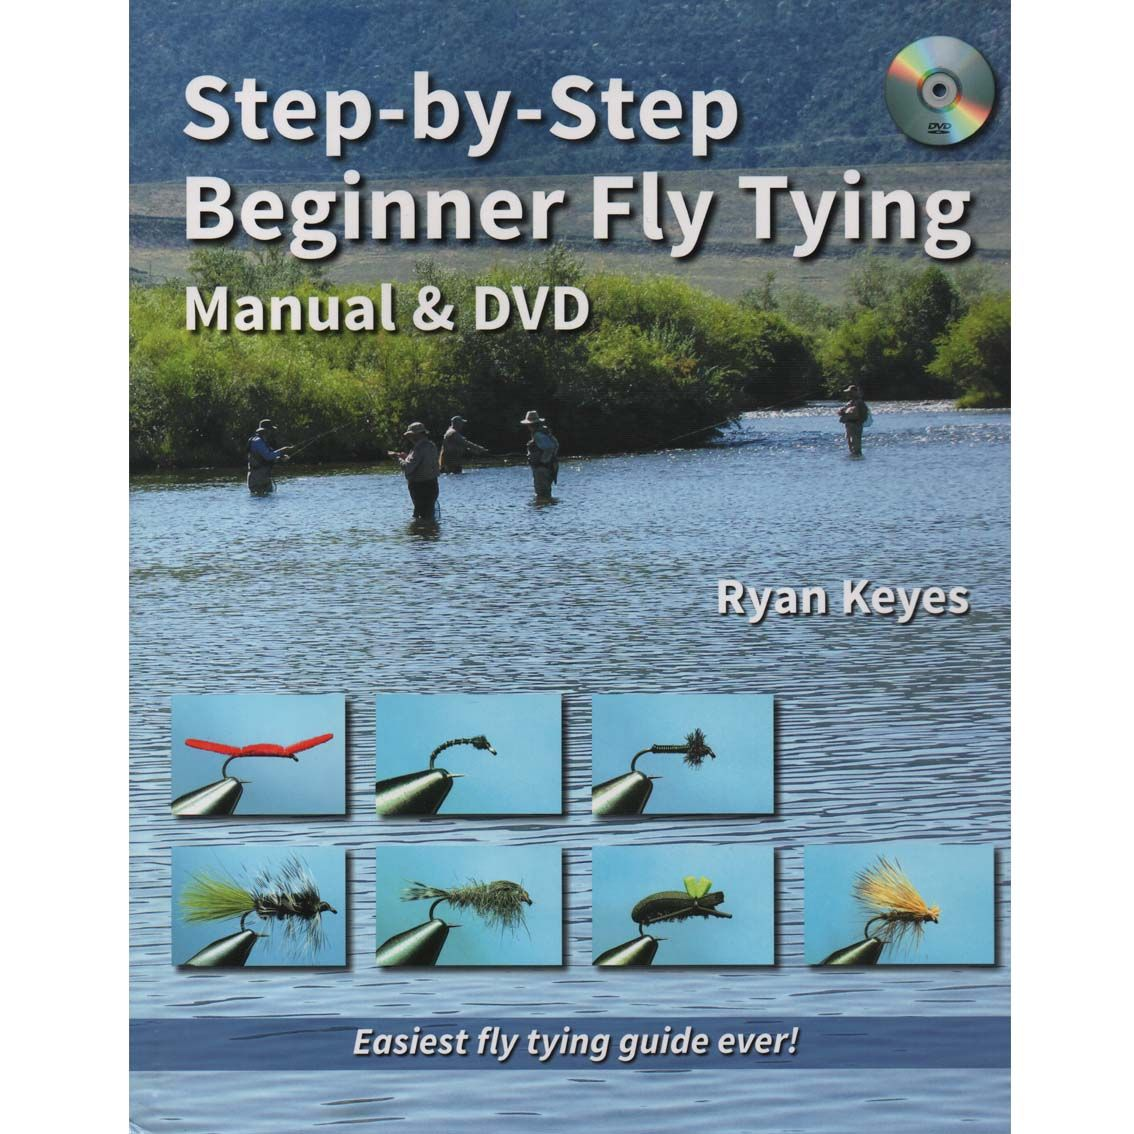 Livro Step-by-Step Beginner Fly Tying com DVD (Ryan Keyes)